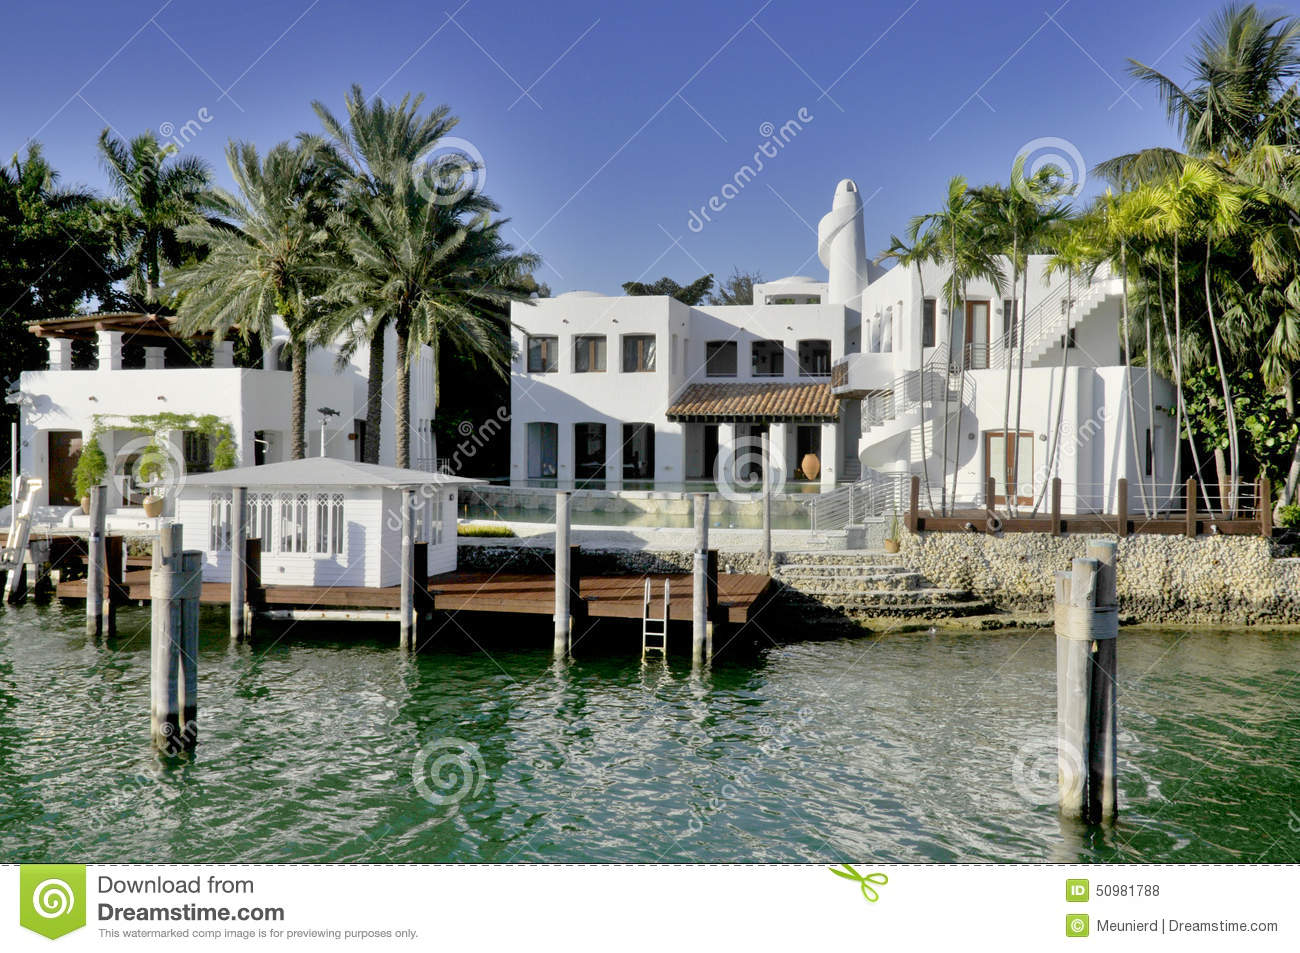 House in star island editorial stock photo image of for Star island miami houses